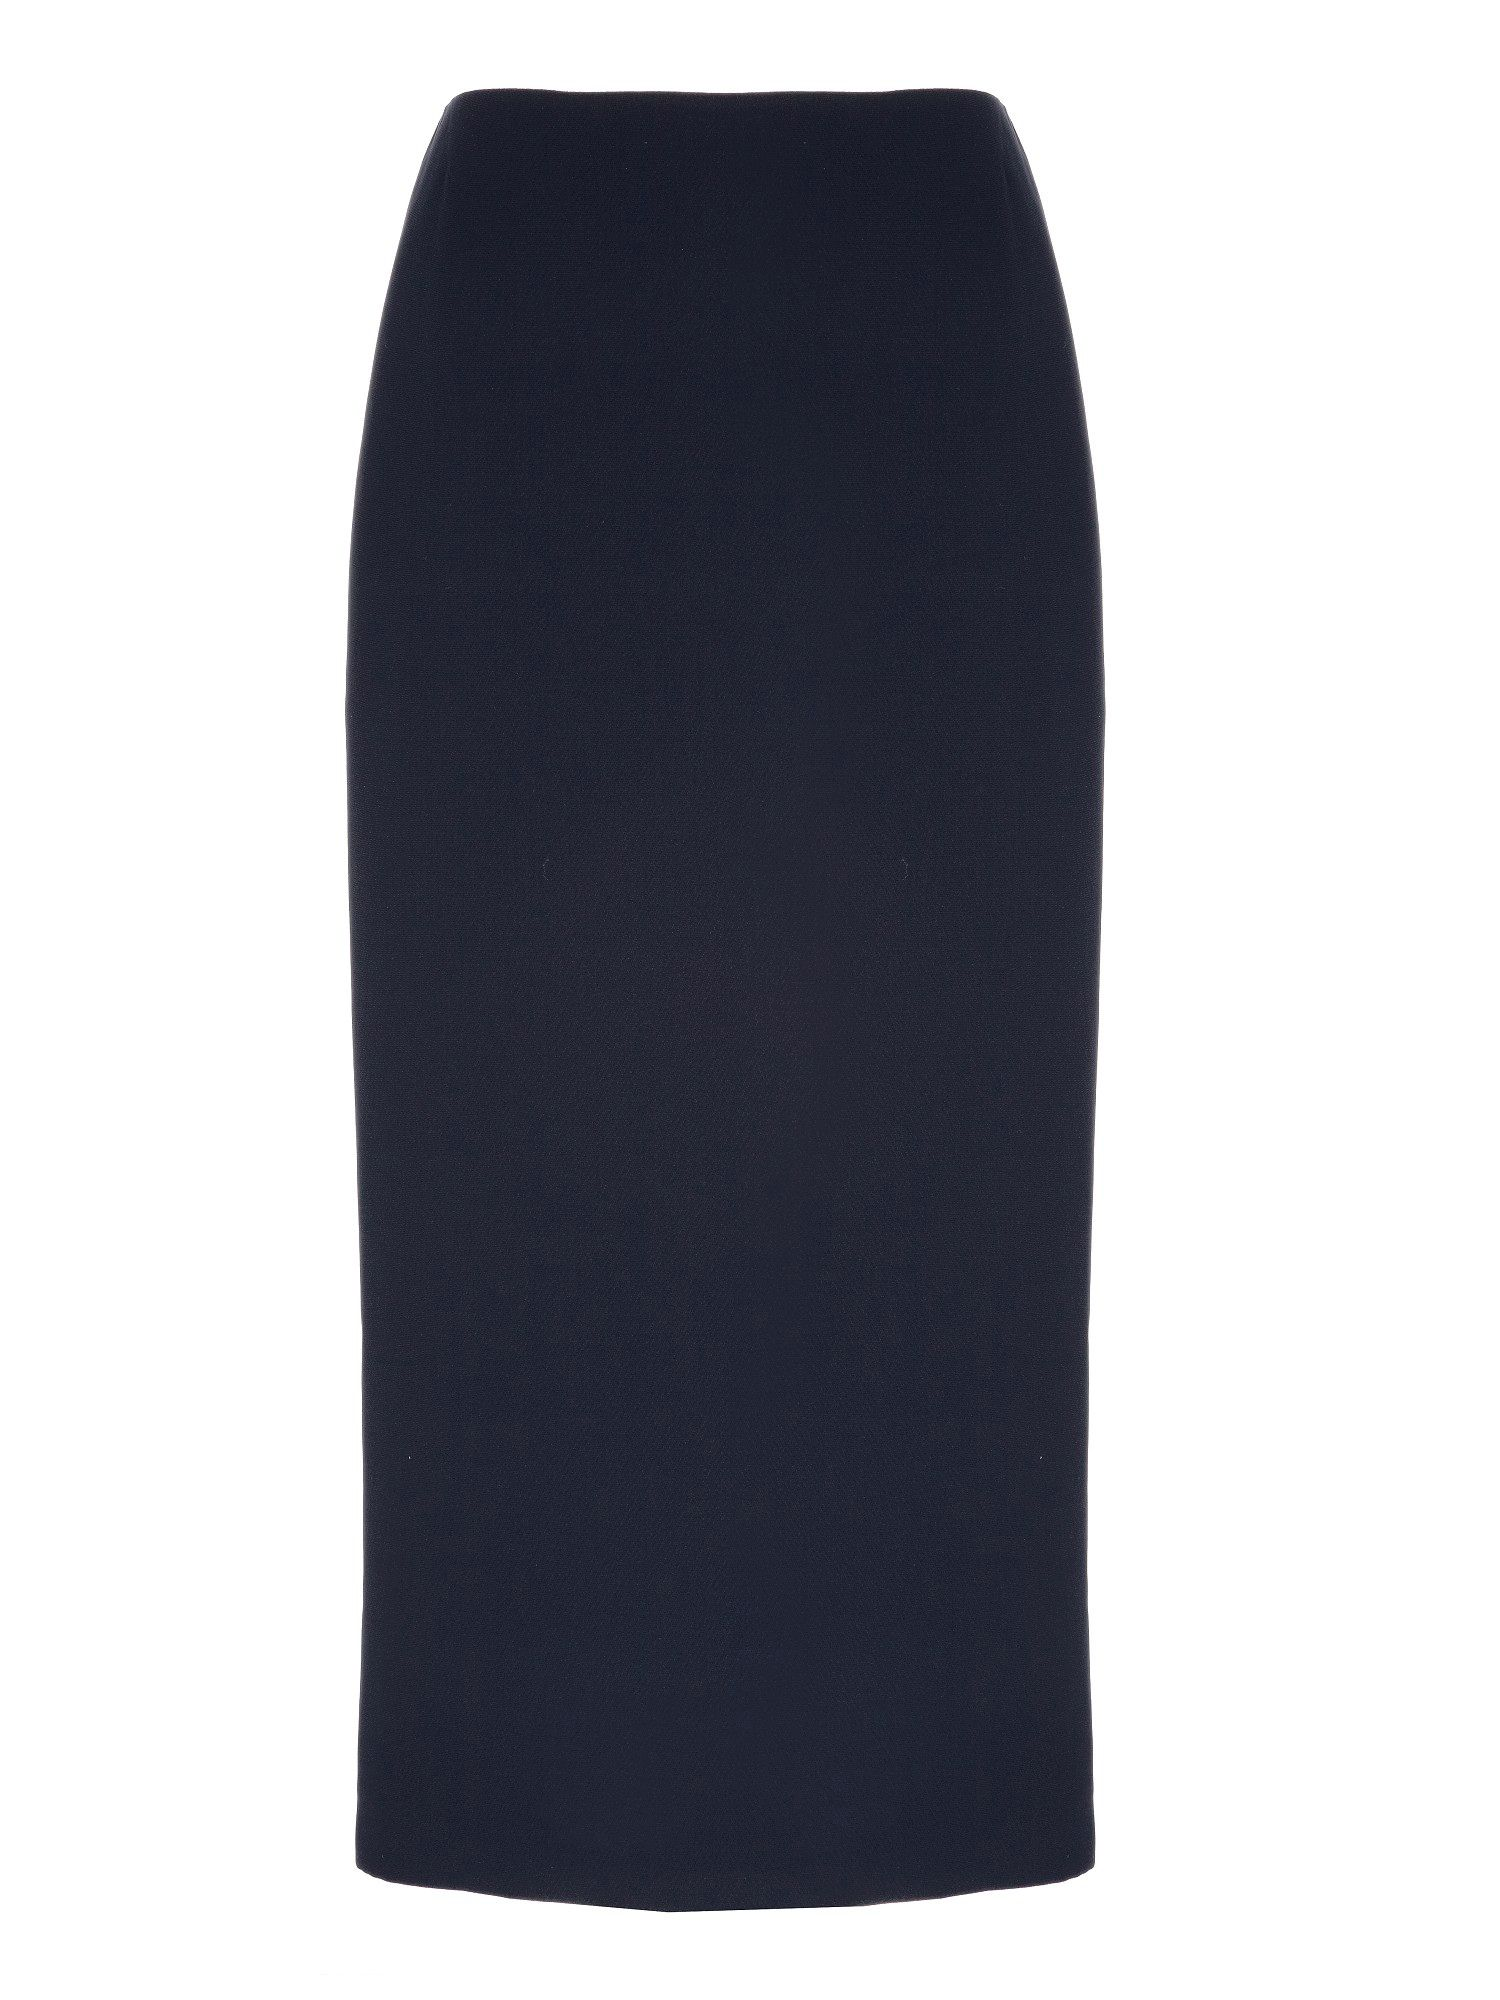 Navy long pencil skirt